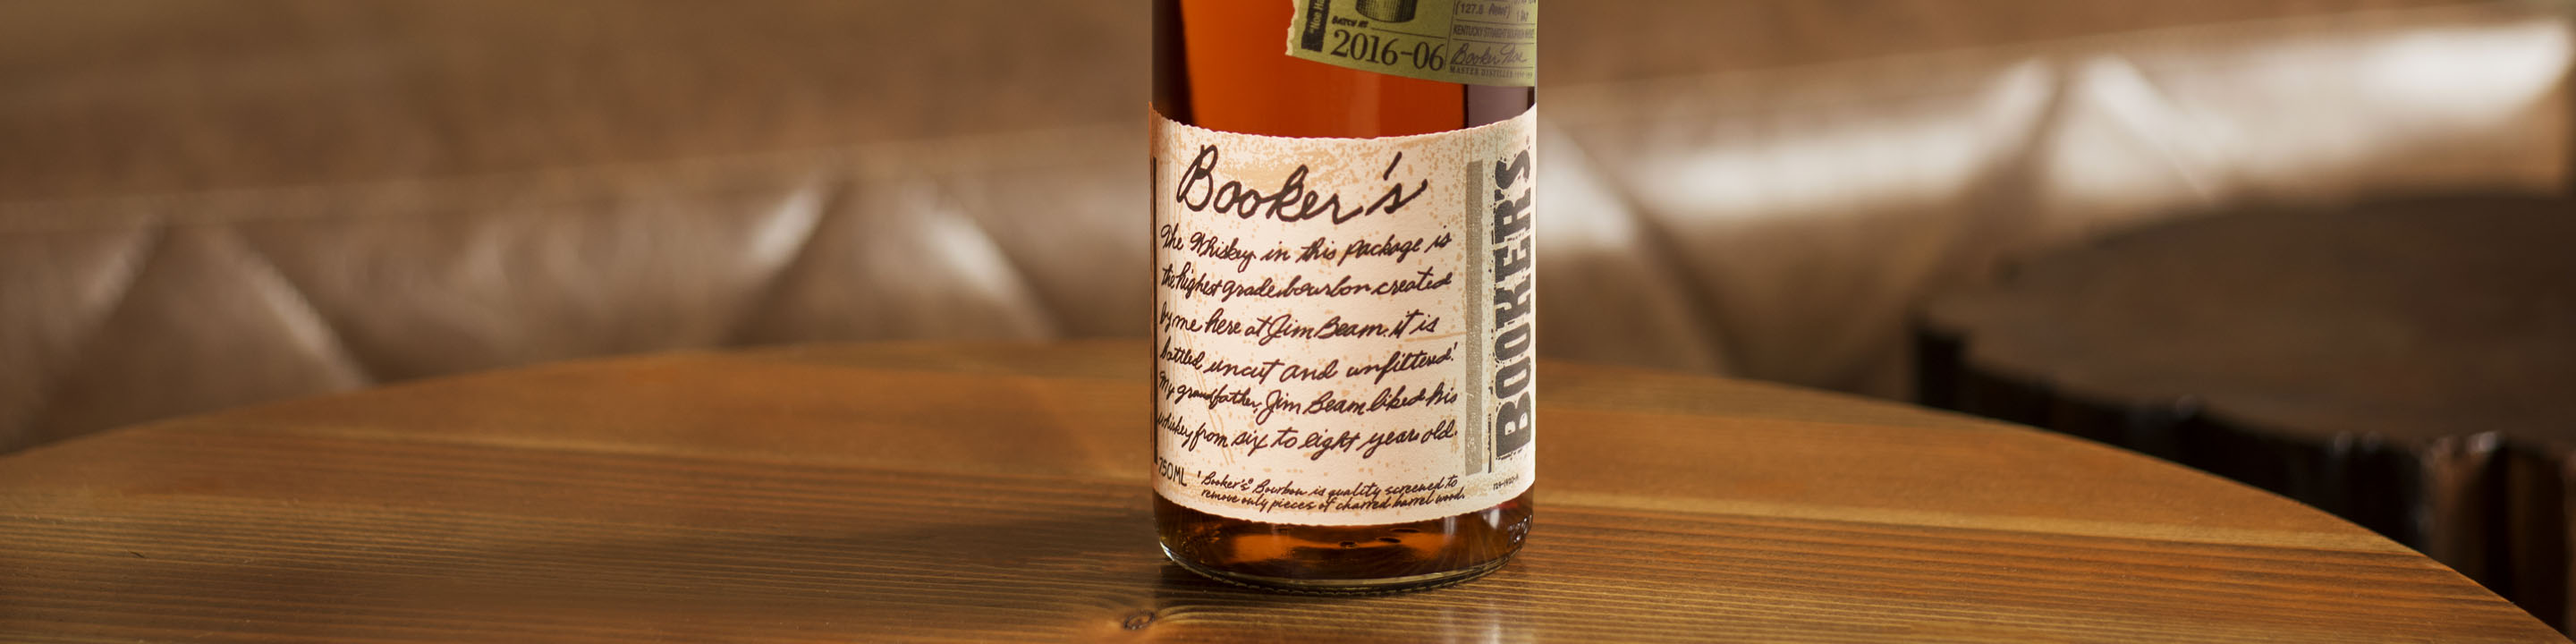 Discover Booker's® Bourbon, a small batch bourbon whiskey. Learn more about our cask strength bourbon, tasting notes, and more!